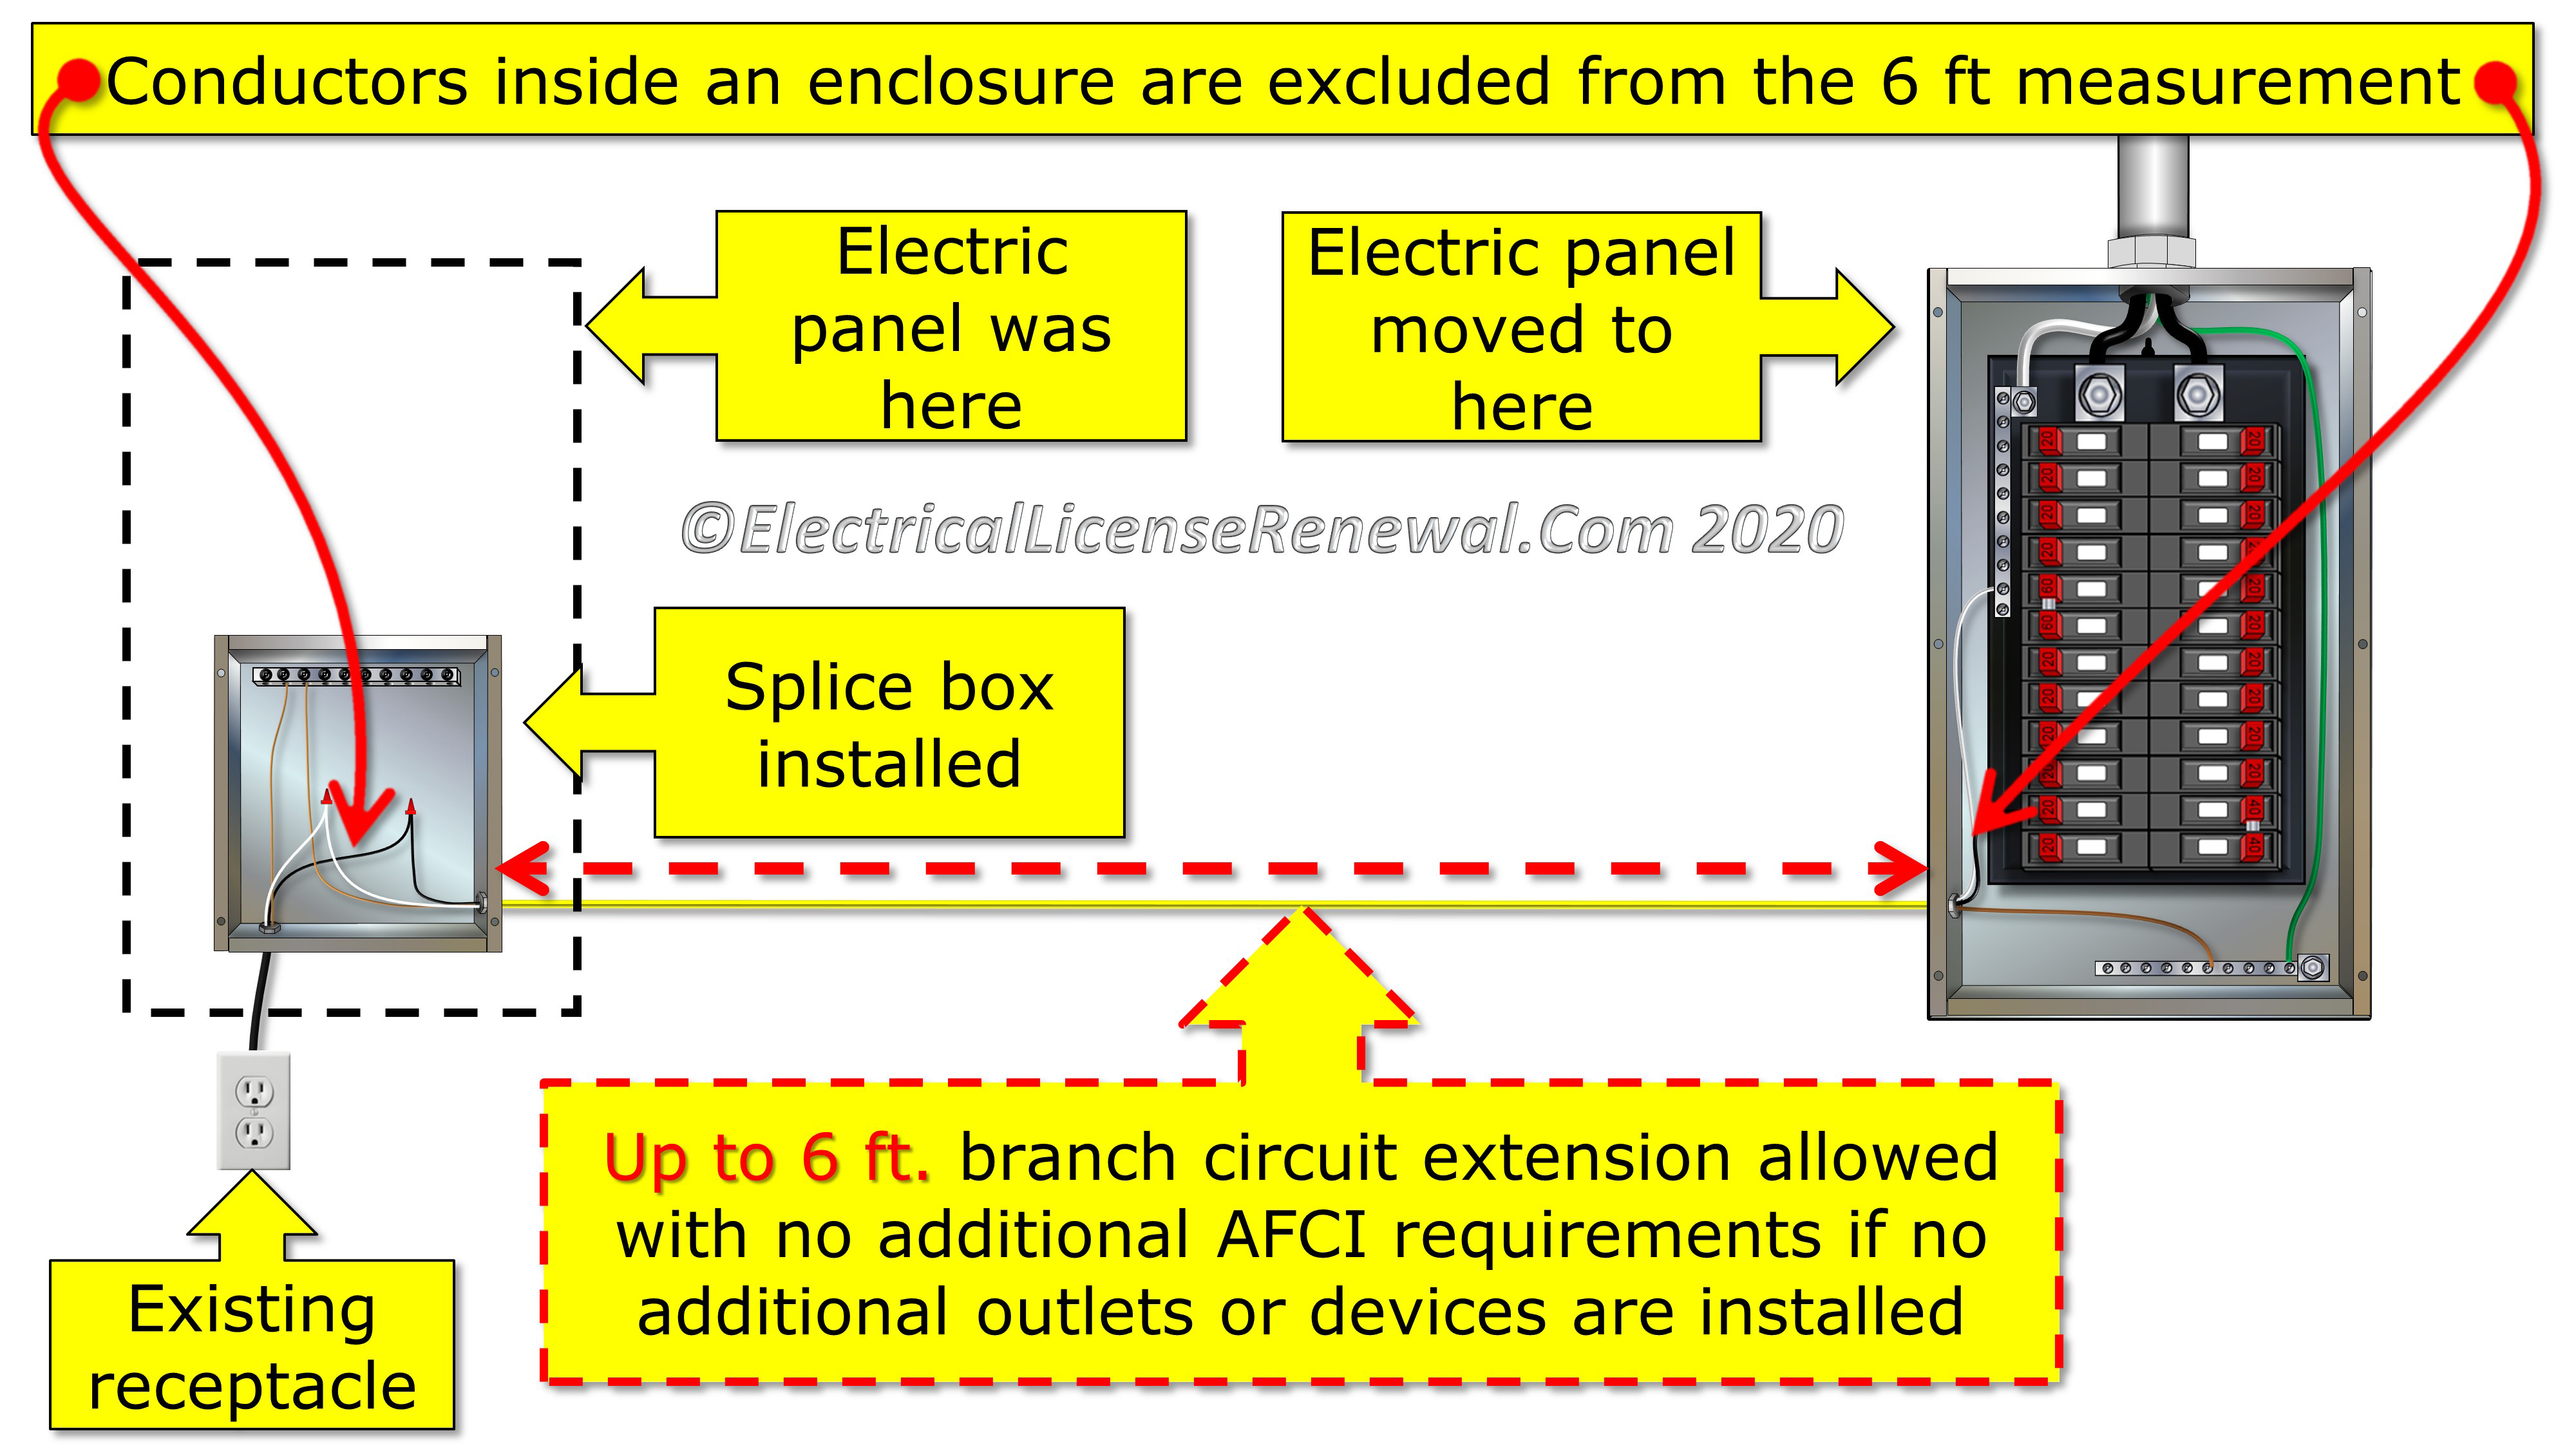 210.12(D) AFCI Protection. Branch Circuit Extensions or Modifications in  Dwelling Units, Dormitory Units, Guest Rooms and Guest Suites.Electrical License Renewal